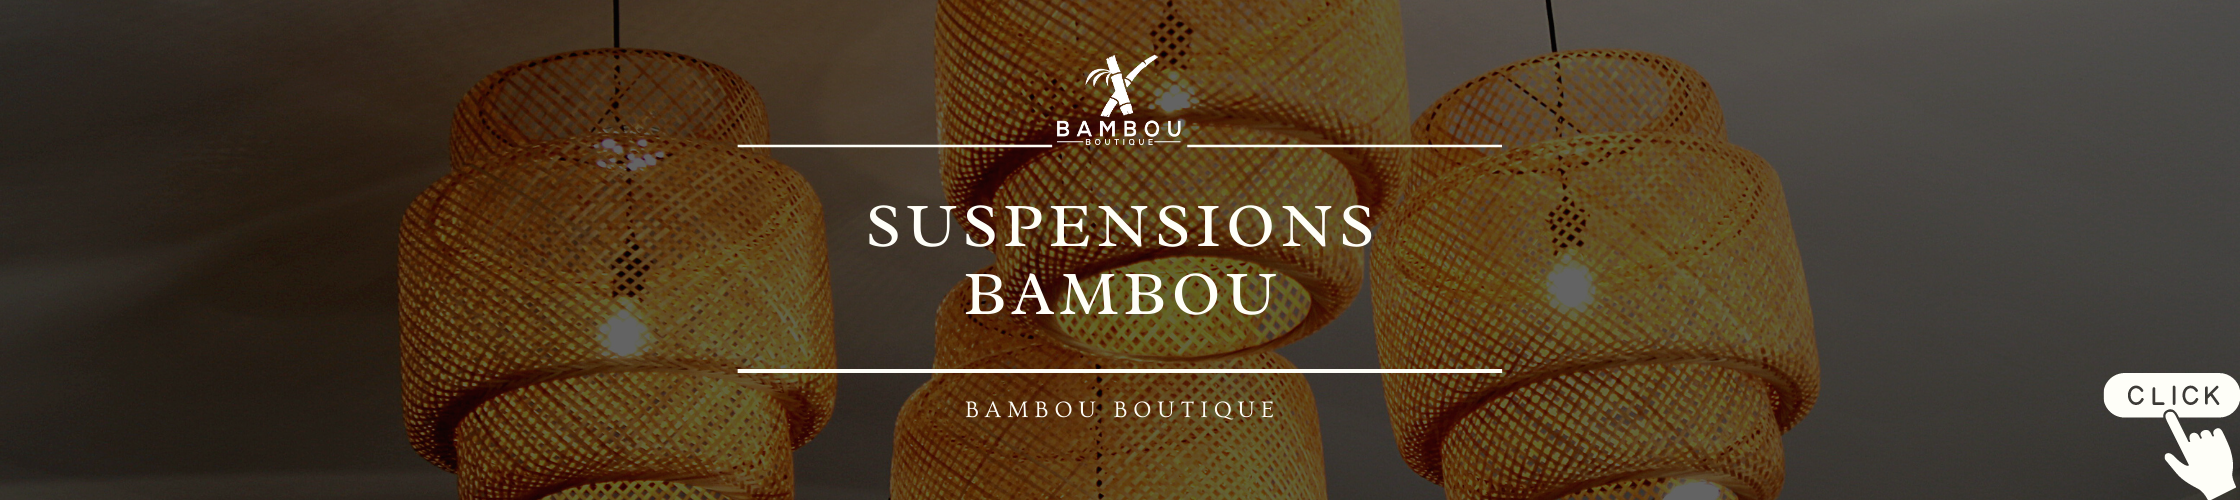 Suspensions bambou